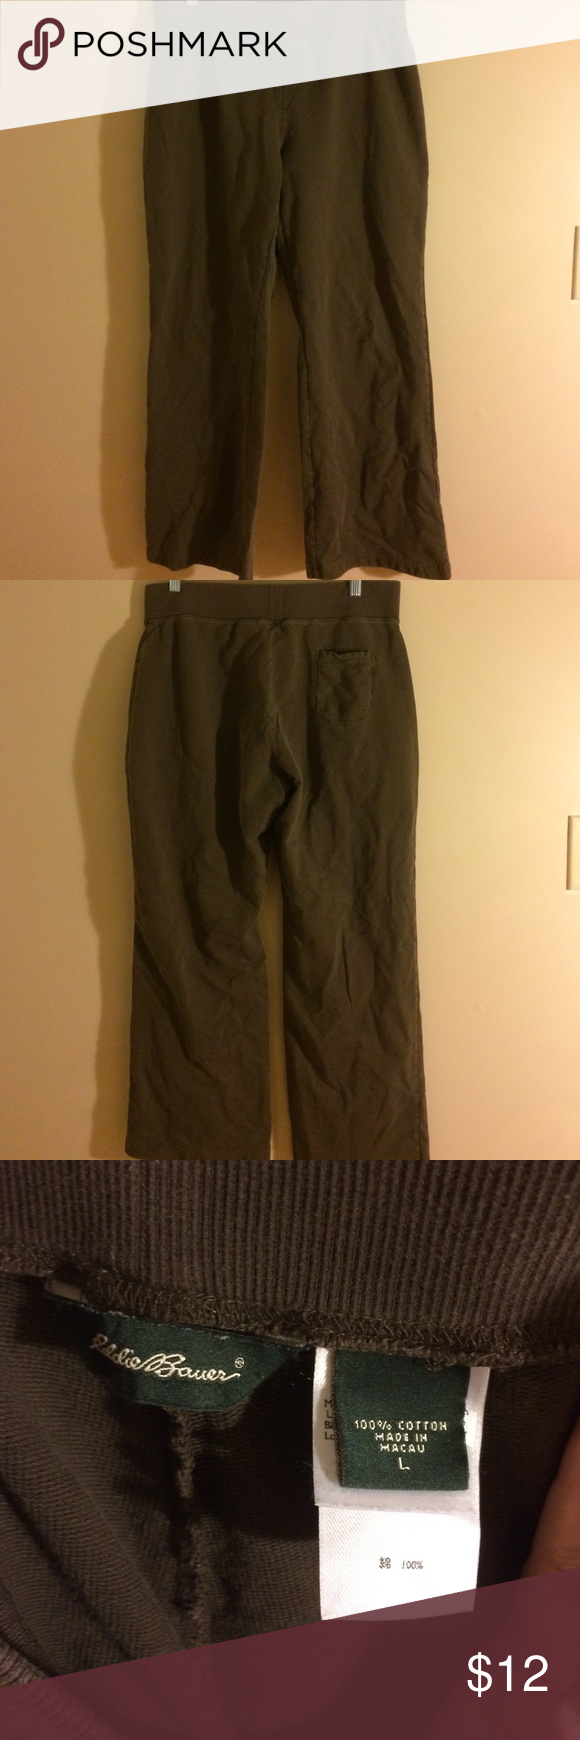 Eddie Bauer lounge pants size large GUC brown cotton pants with wide waist band. Super comfortable. Smoke free home. Bundle to save more Eddie Bauer Pants Track Pants & Joggers